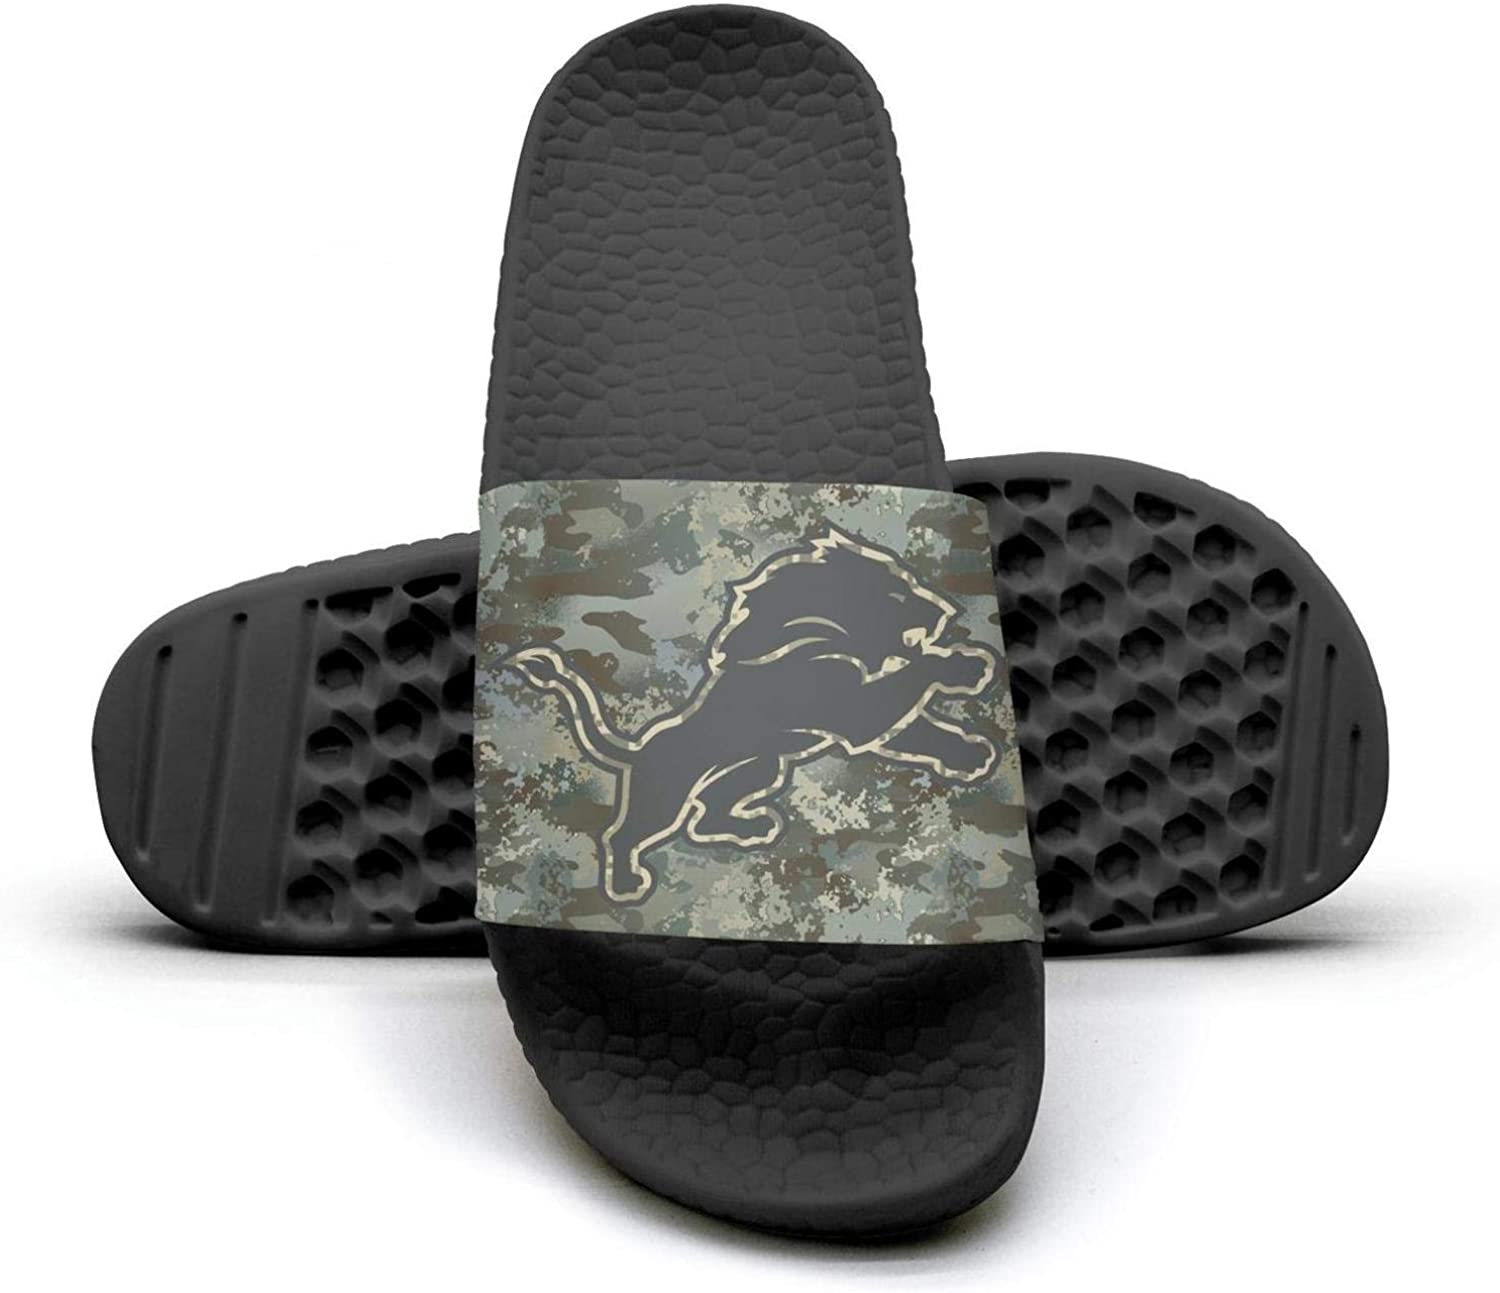 UUTTAA Womens Camouflage Camo Printed Non-Slip Slippers Slide Flip Flop Sandals Summer Soft for Football Fans